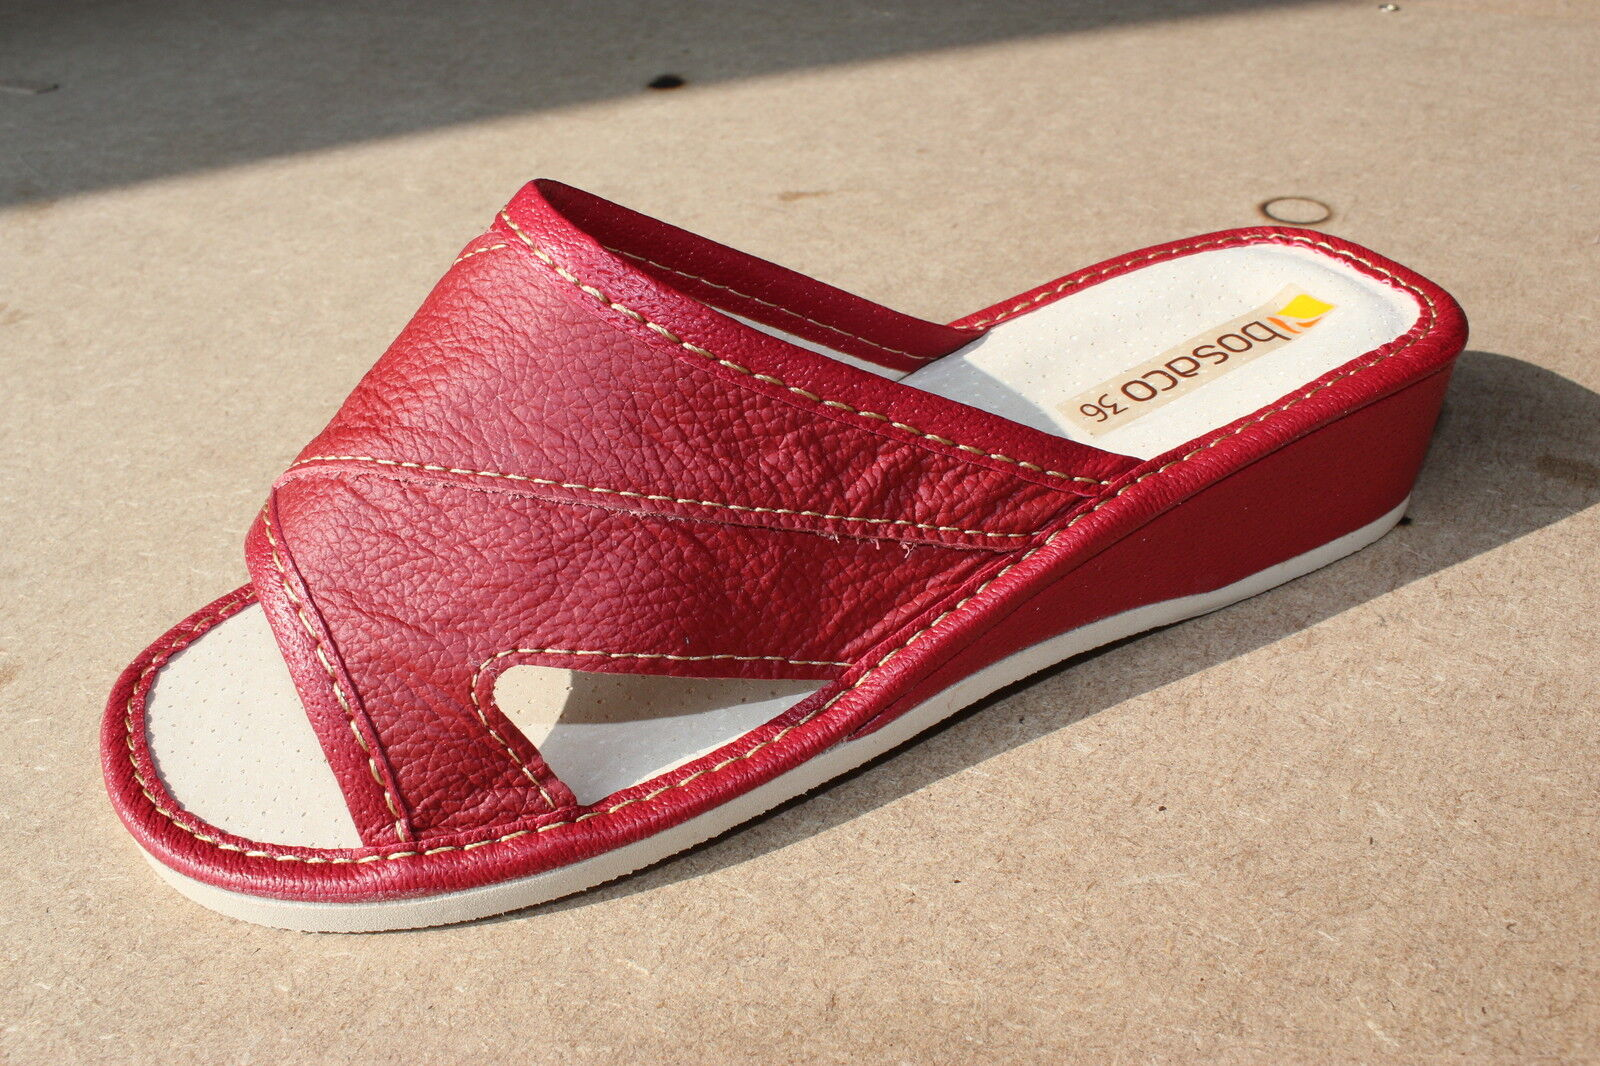 Comfort Genuine Leather Leather Genuine Slip on Slippers Shoes for Women UK Size 3 4 5 6 7 8 8631b6